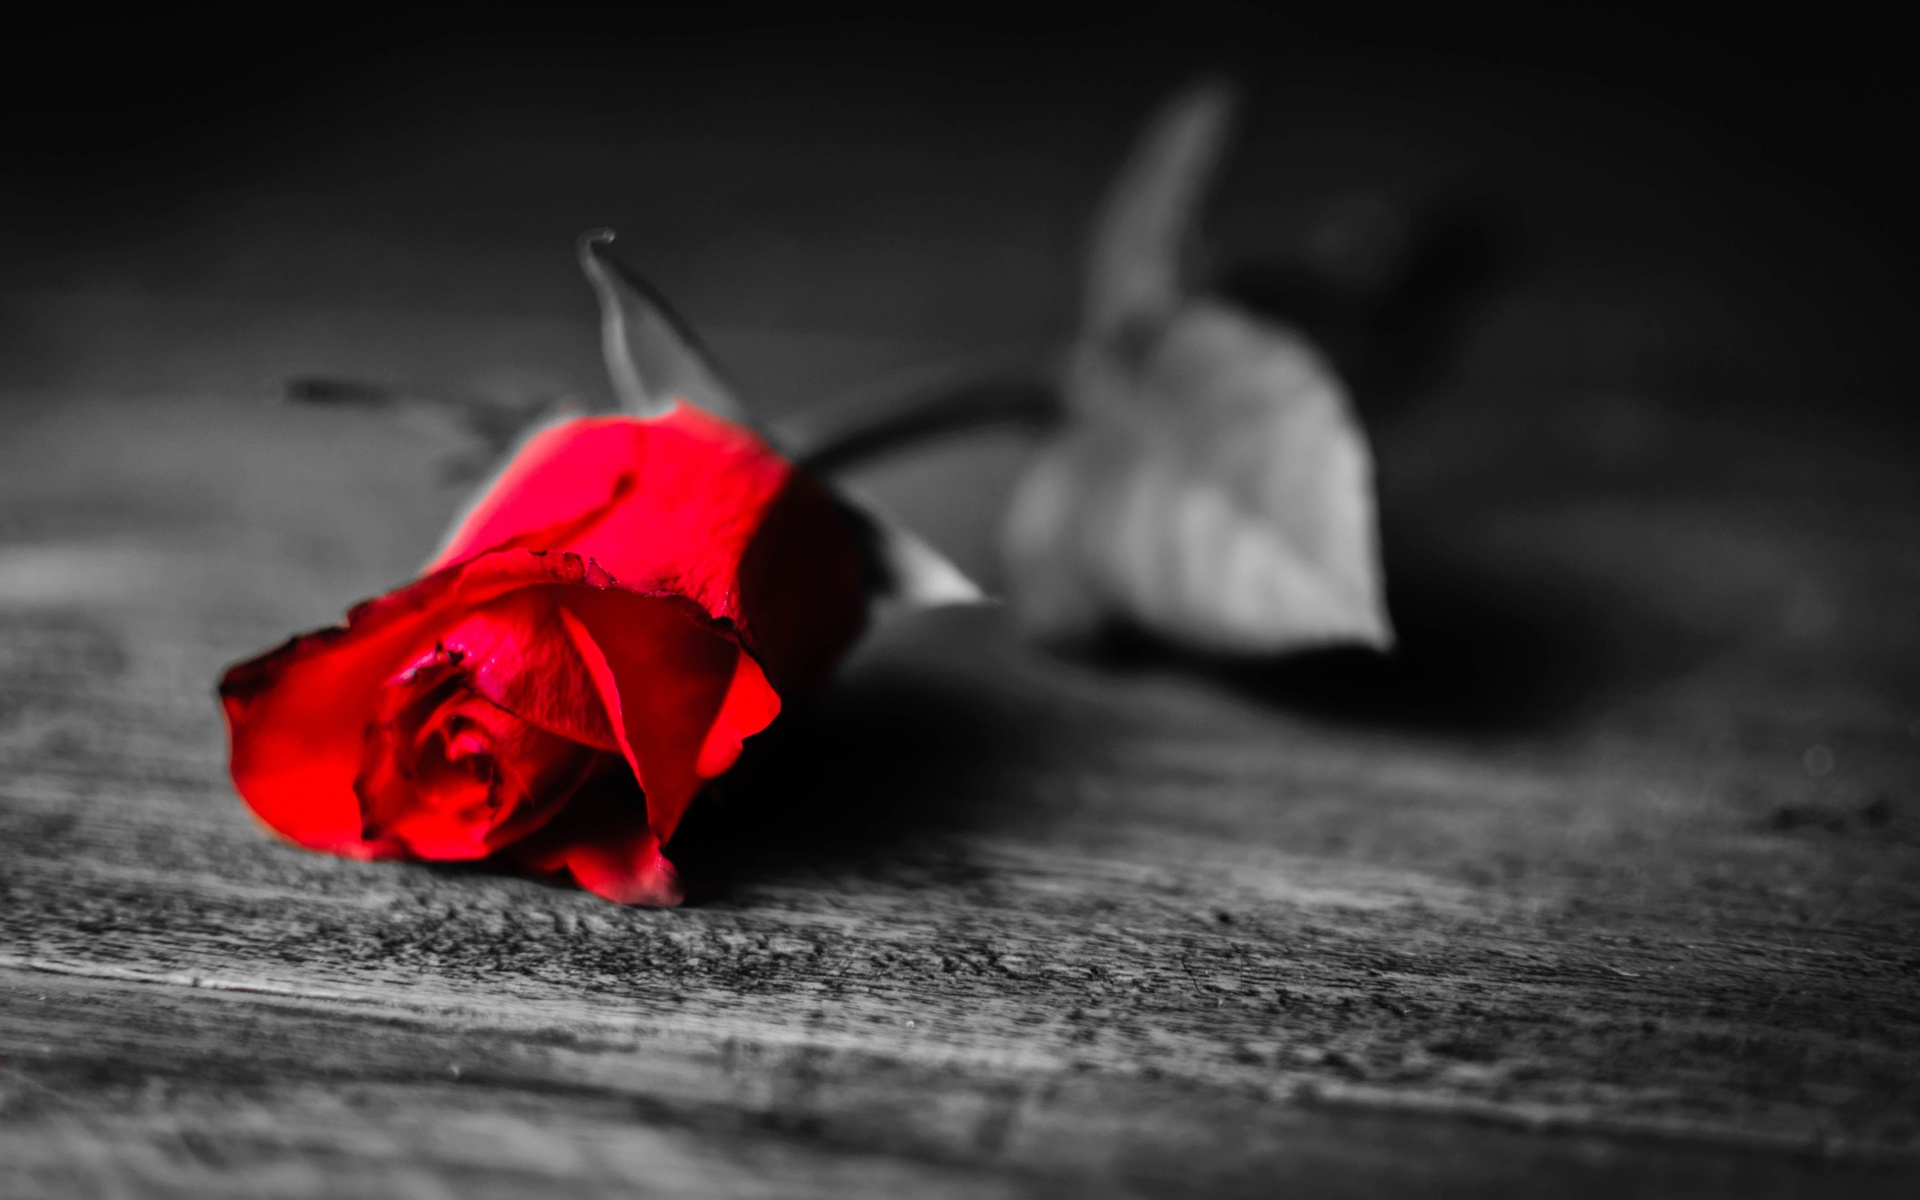 Red Rose With Black And White Background wallpaper 224278 1920x1200